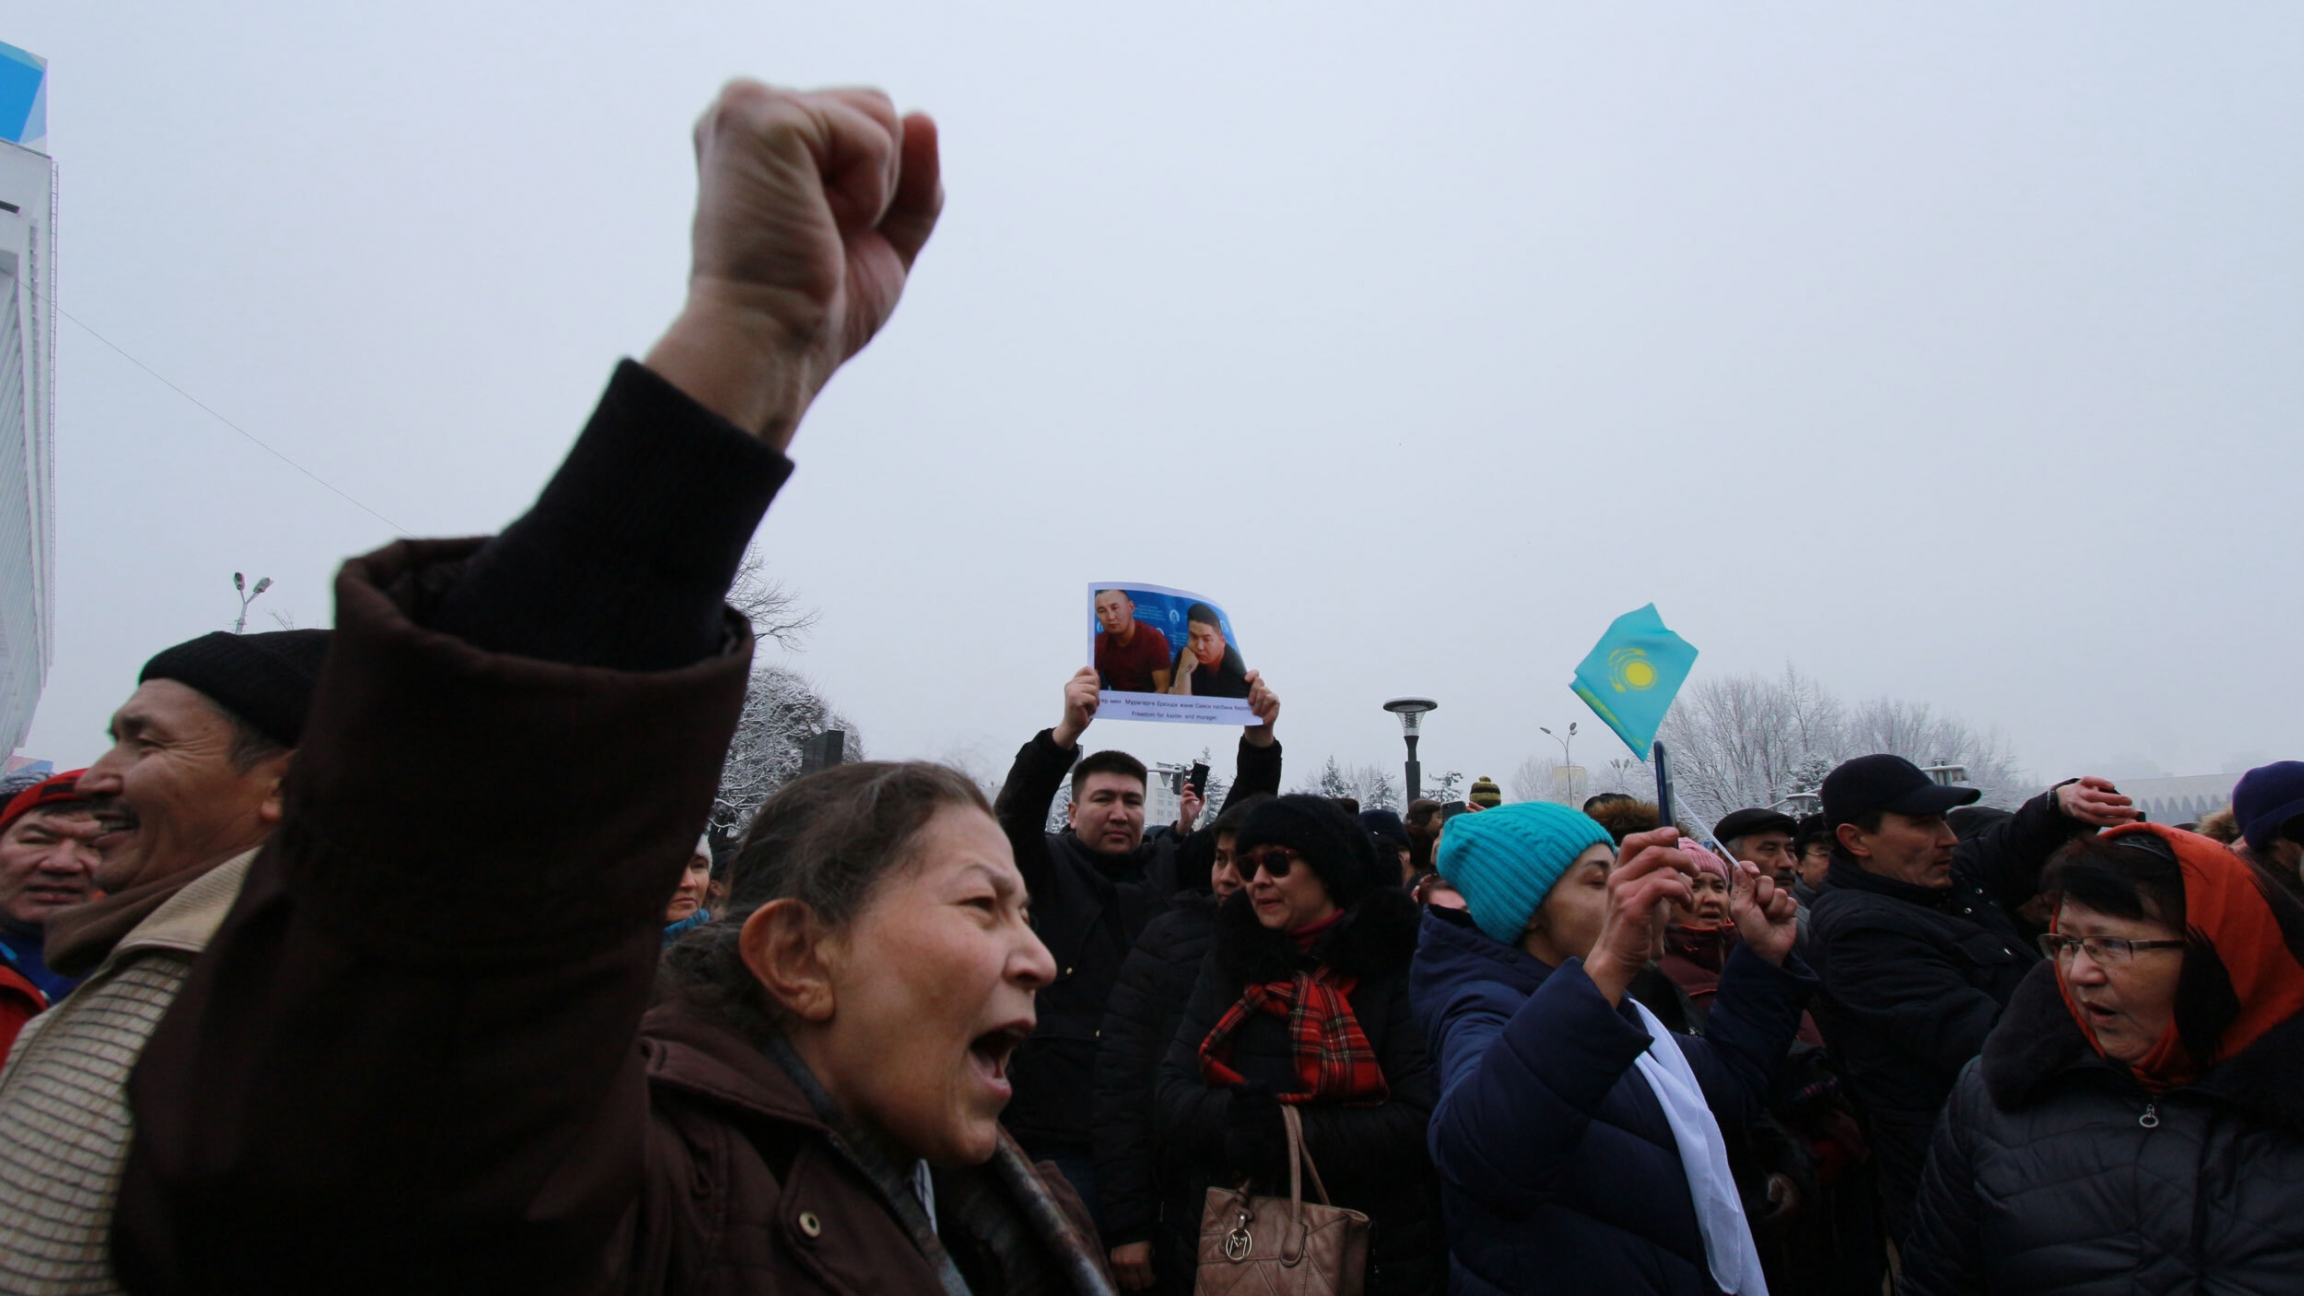 Kazakhs protest what they see as excessive expansion of Chinese influence in Kazakhstan, including new Silk Road investments, in Almaty, Kazakhstan, Dec. 2019.